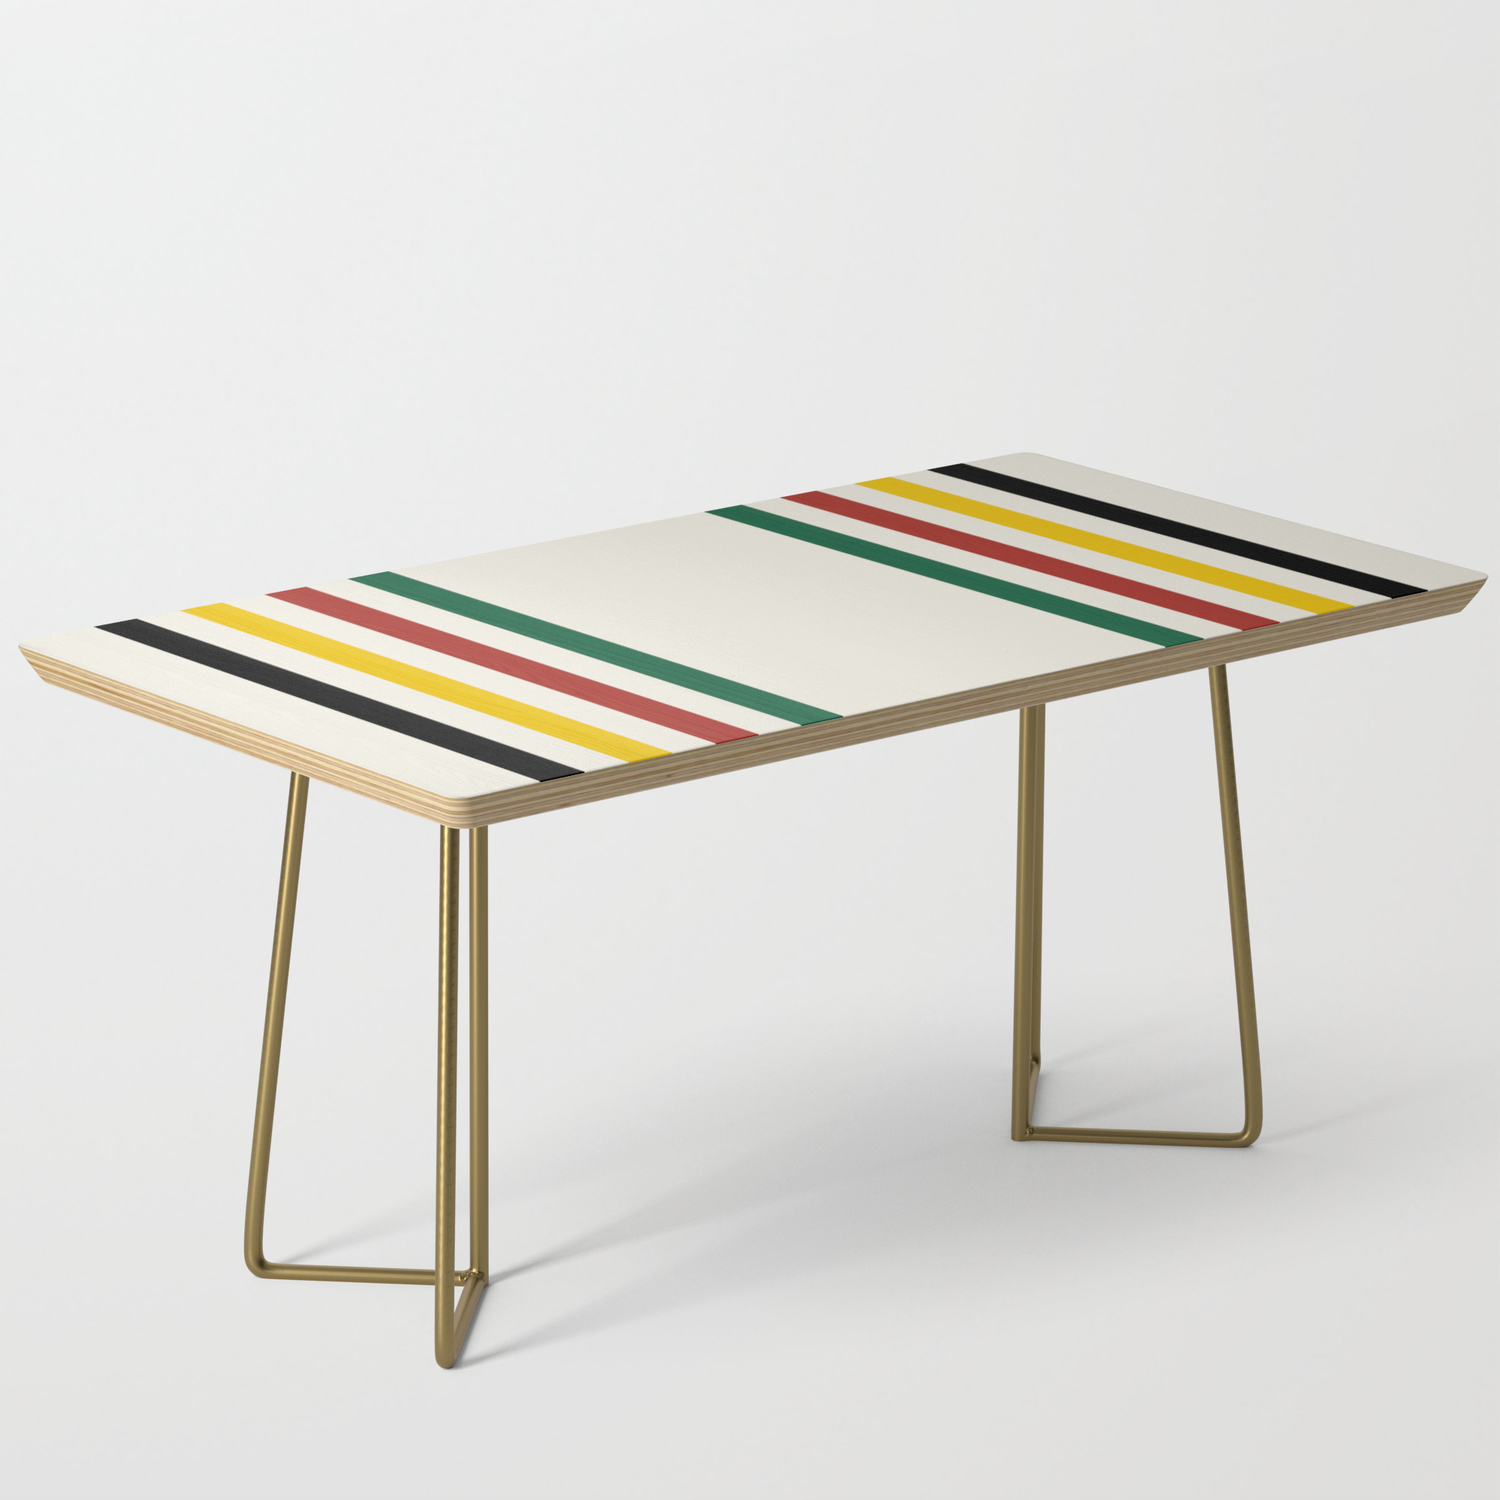 Rustic Lodge Stripes Black Yellow Red Green Coffee Table By Cafepretzel